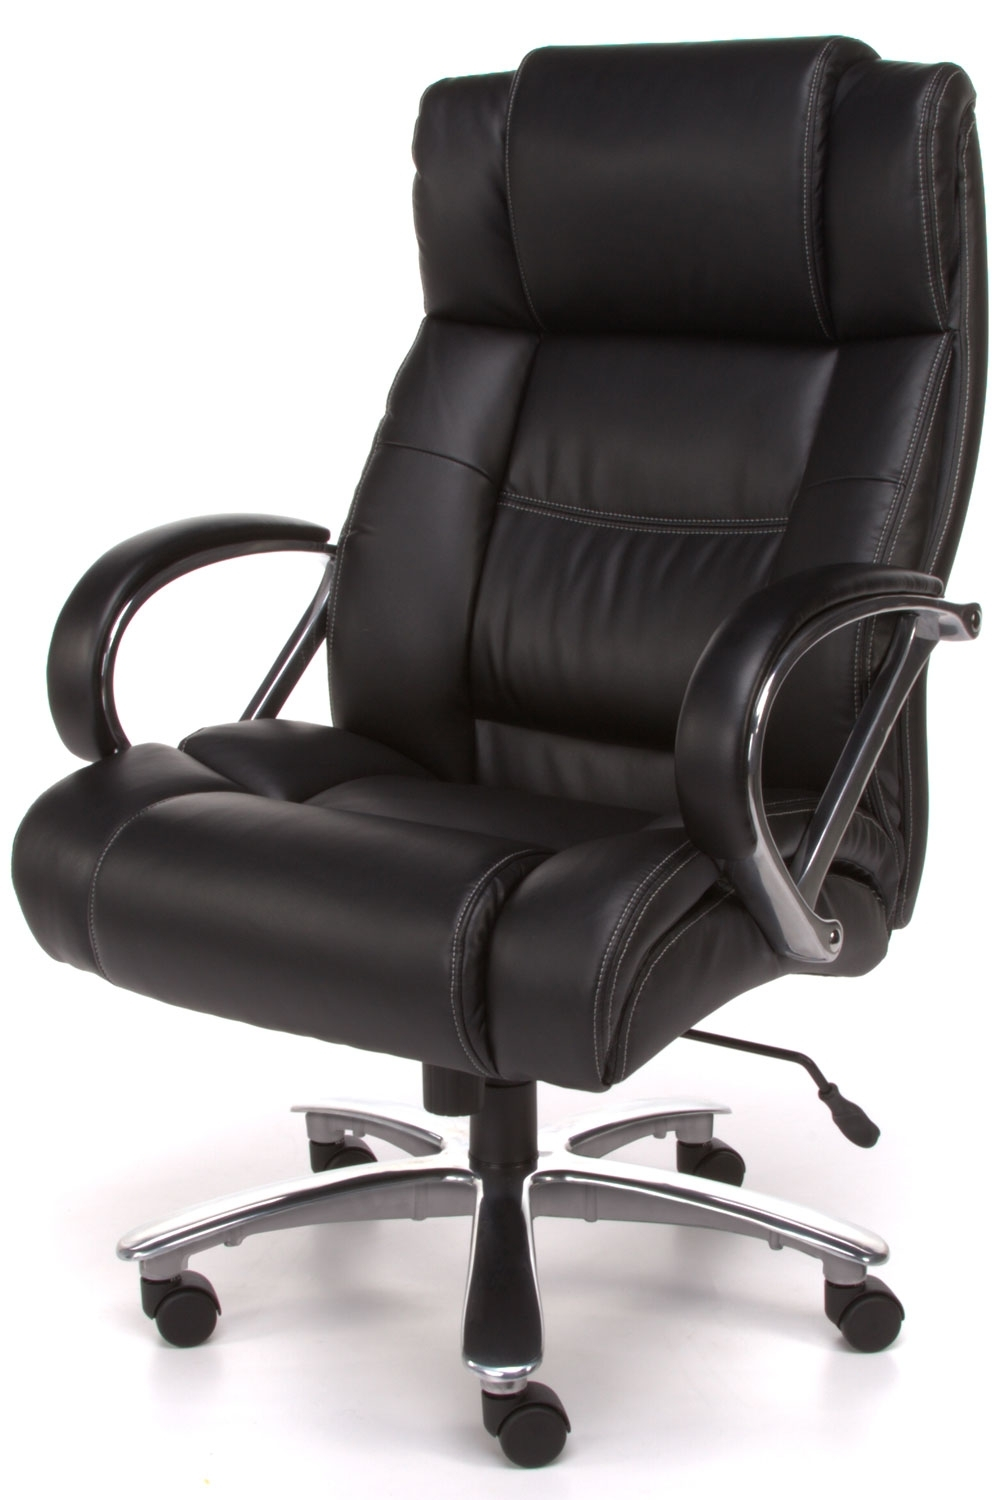 Large Executive Office Chairs Pertaining To Widely Used 810 Lx Avenger Series Big And Tall Executive Office Chair In (View 10 of 20)